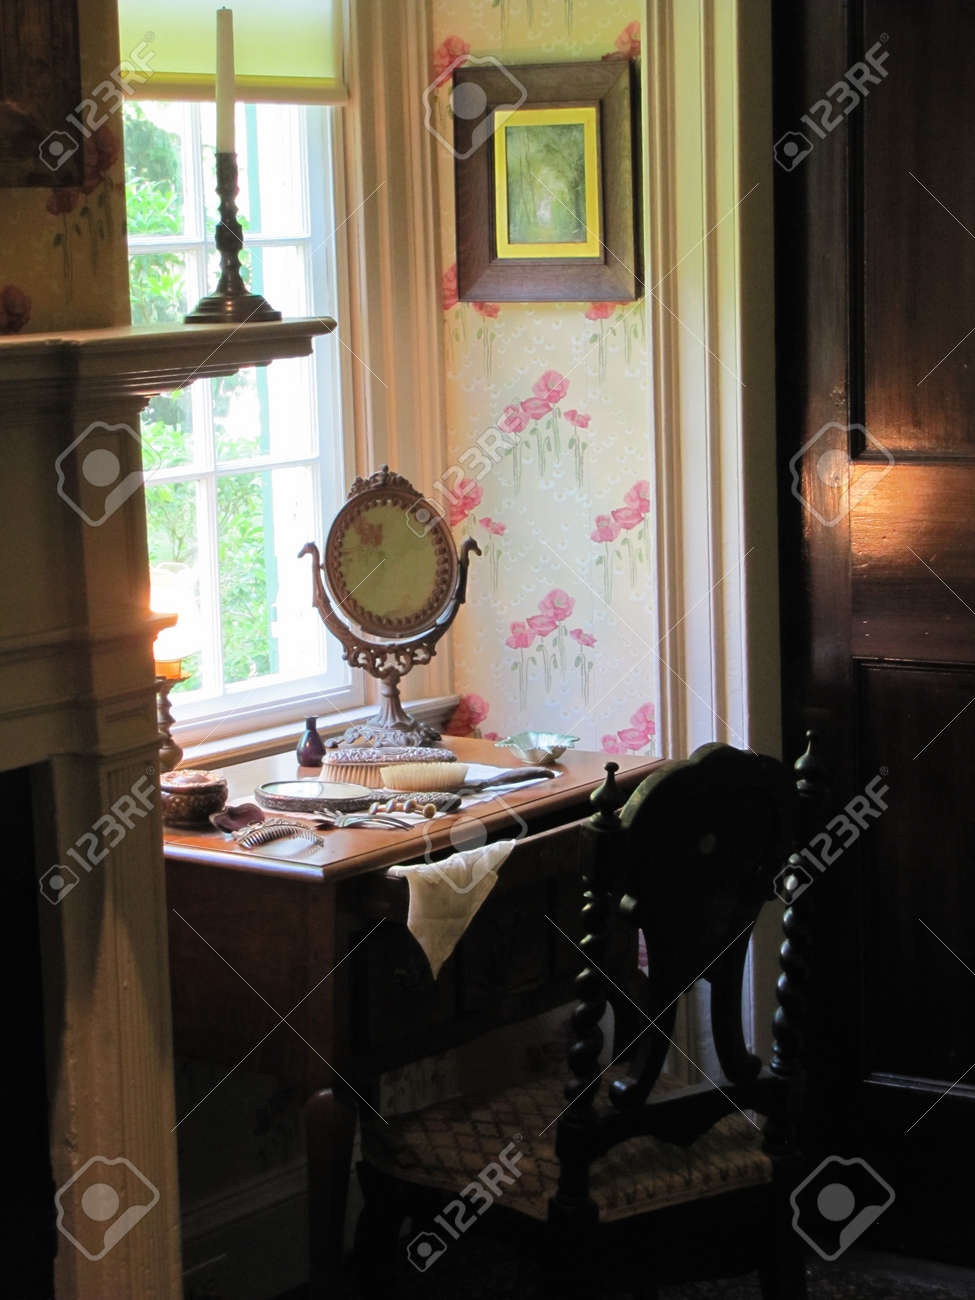 Vintage Bedroom Vanity Stock Photo, Picture And Royalty Free Image ...